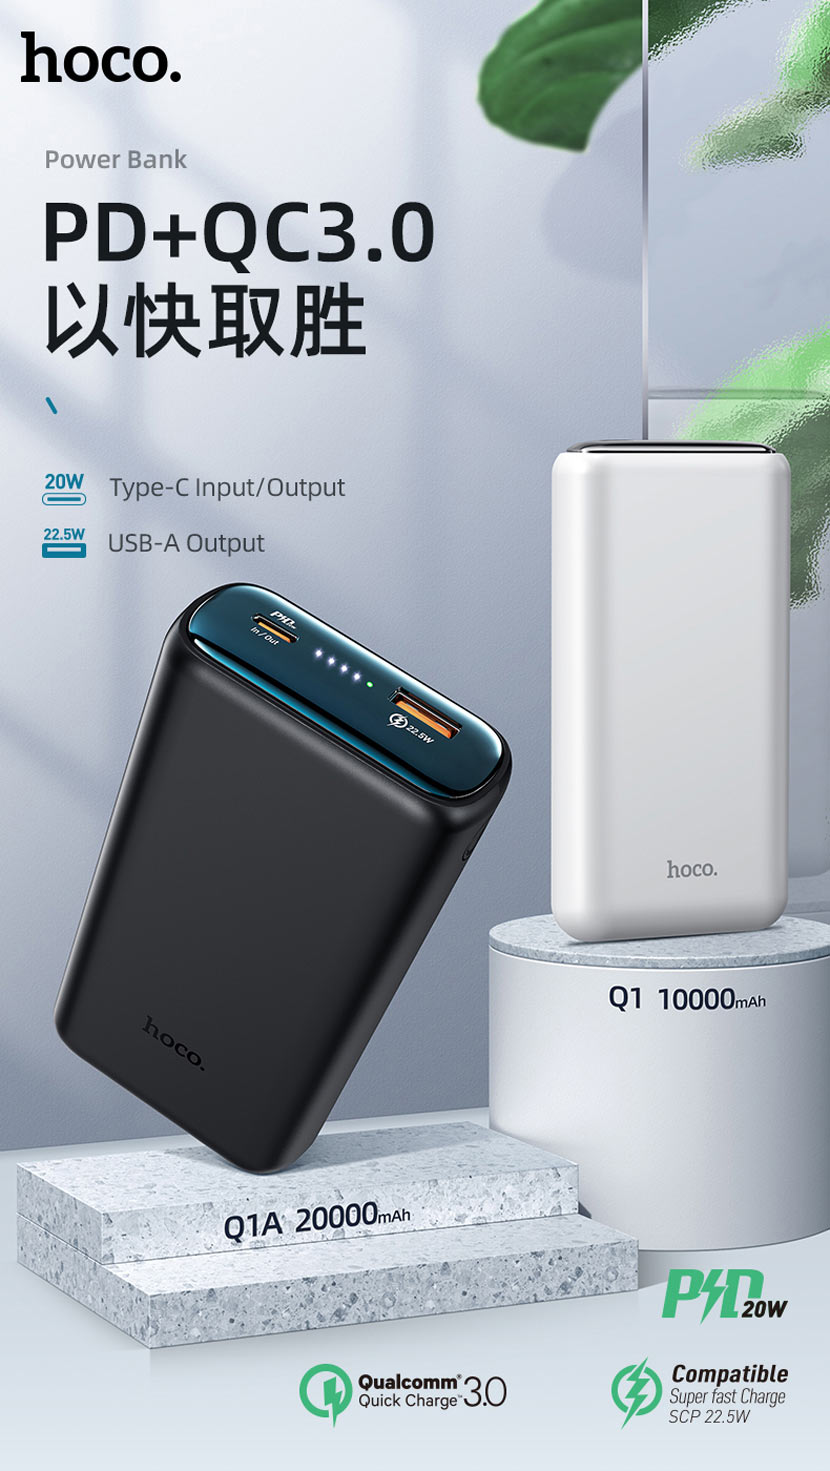 hoco news q1 q1a kraft fully compatible power bank input output cn